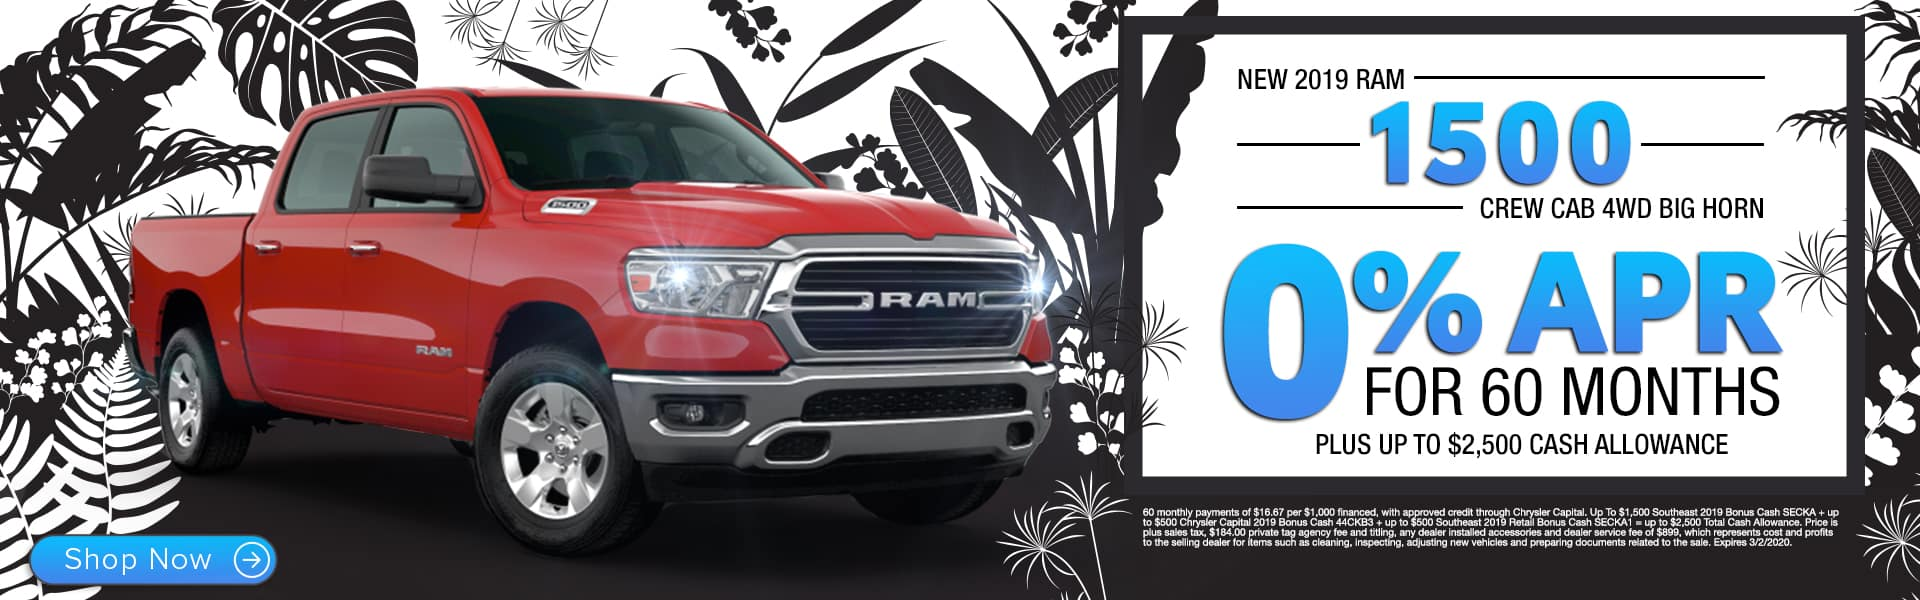 New 2019 RAM 1500 Crew Cab 4WD Big Horn | 0% APR For 60 Months Plus Up To $2,500 Cash Allowance